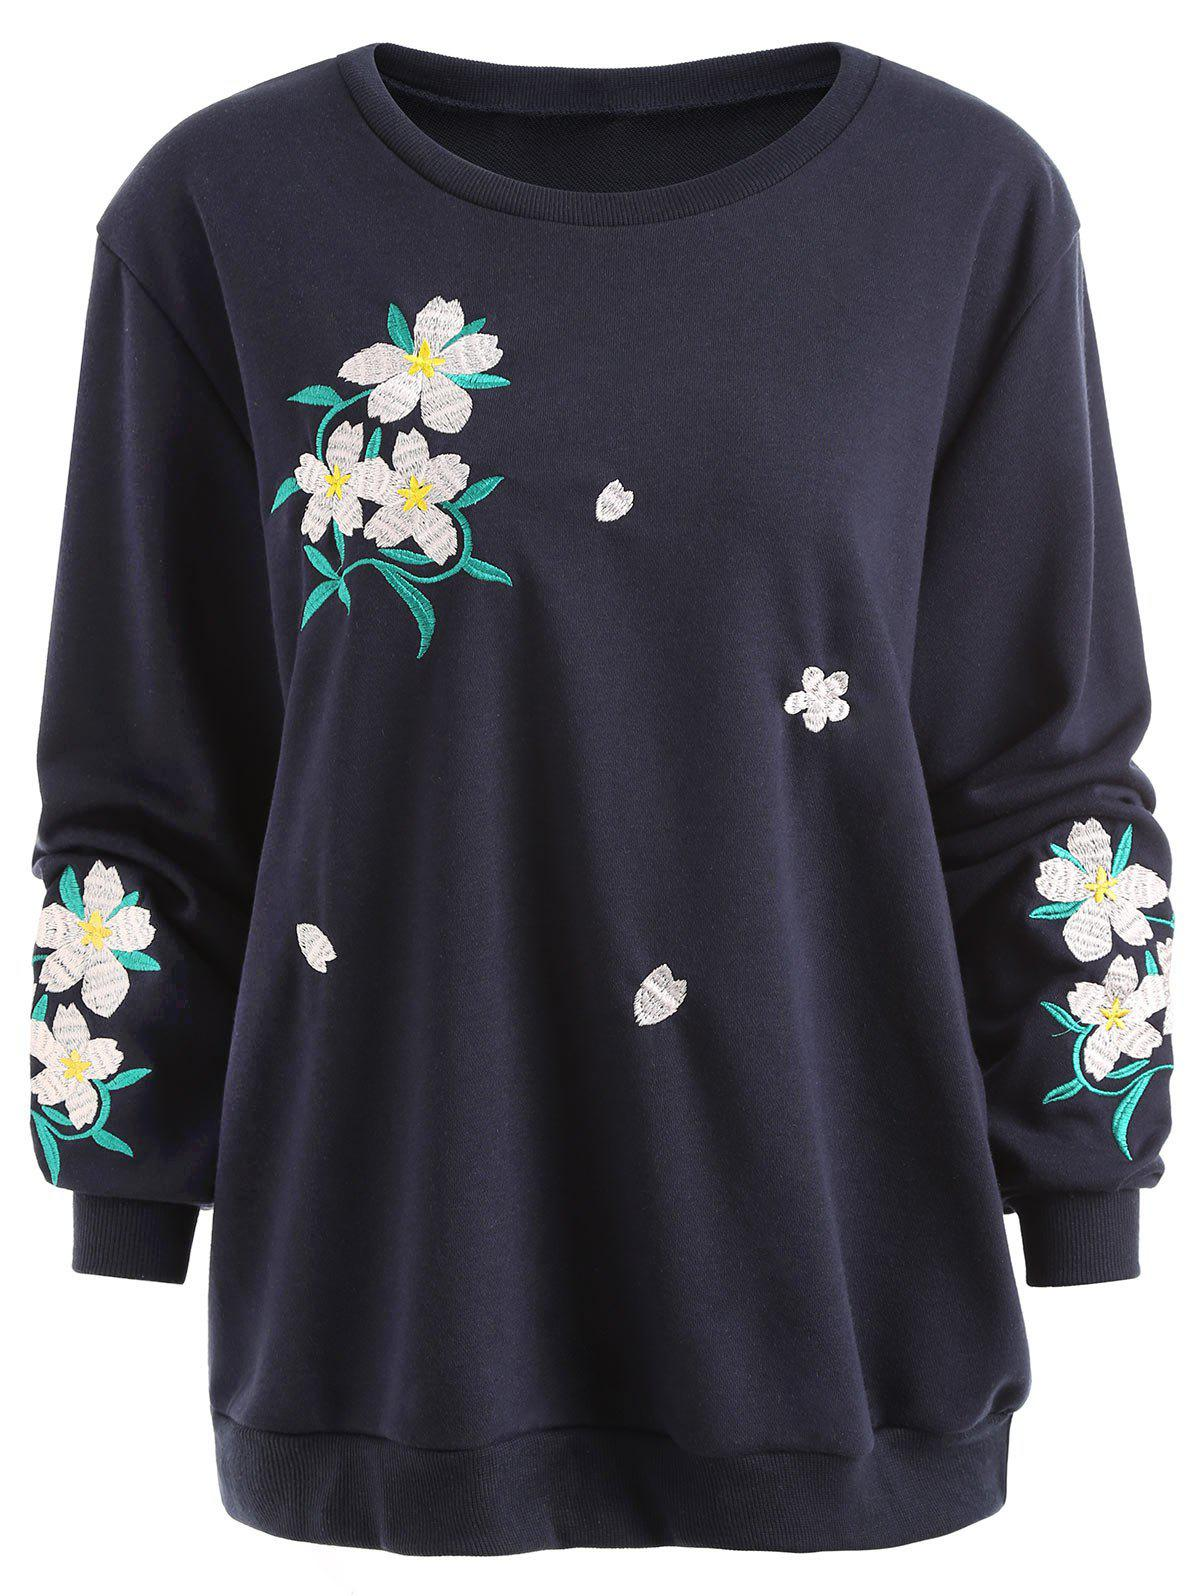 Plus Size Floral Embellished Sweatshirt - PURPLISH BLUE 5XL